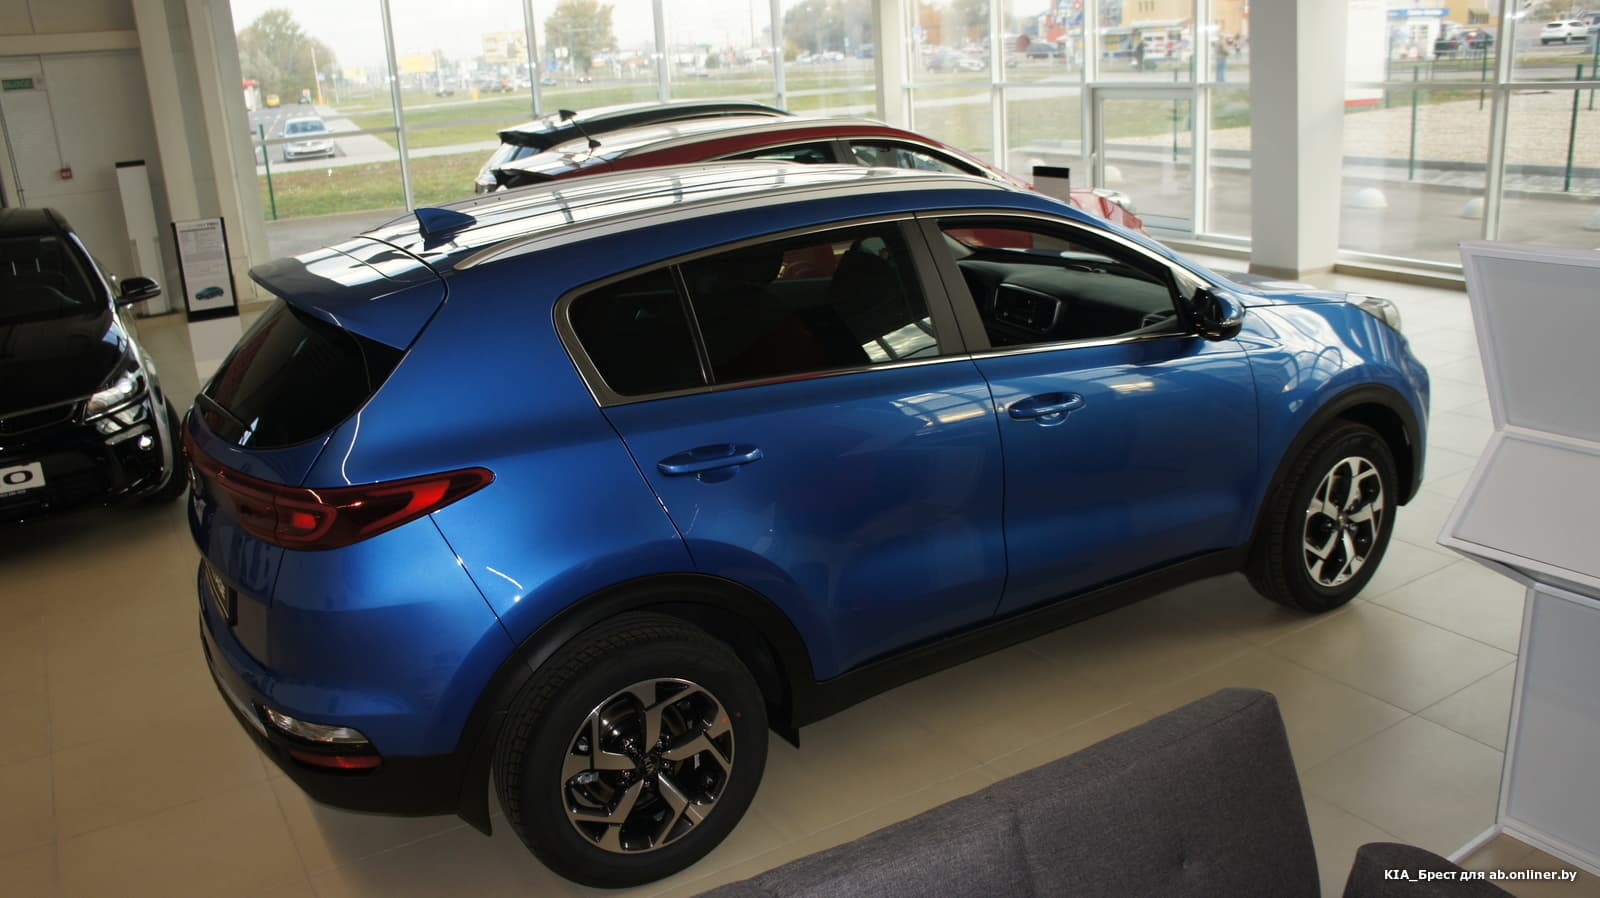 Kia Sportage New Active